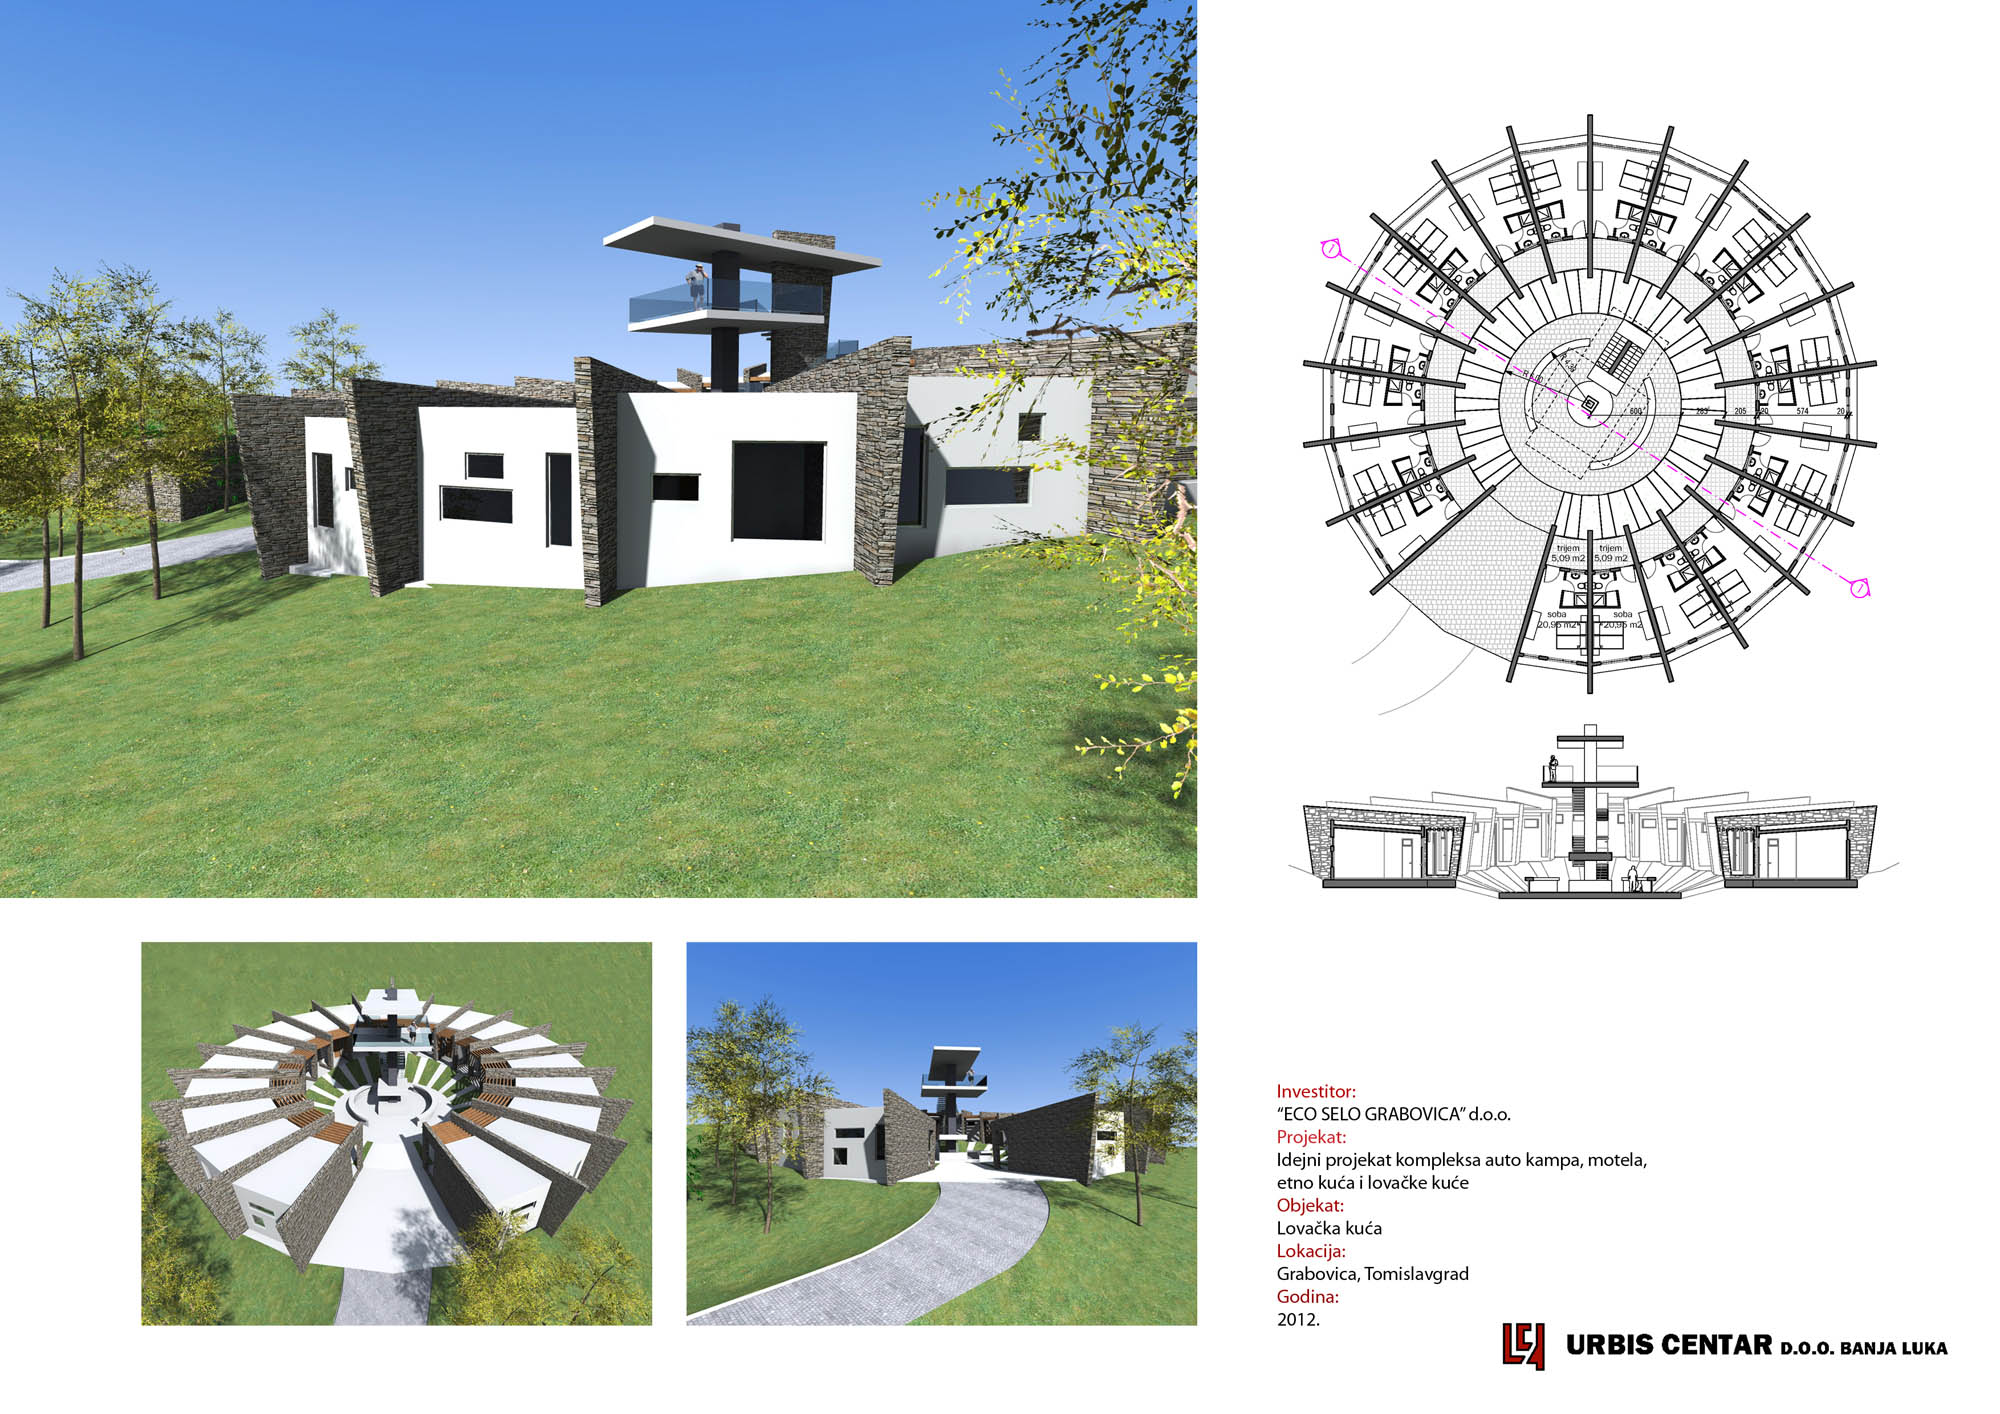 CONCEPT DESIGN OF THE AUTO CAMP COMPLEX, MOTEL, ETHNO HOUSE, AND HUNTING  LODGE, GRABOVICA, TOMISLAVGRAD